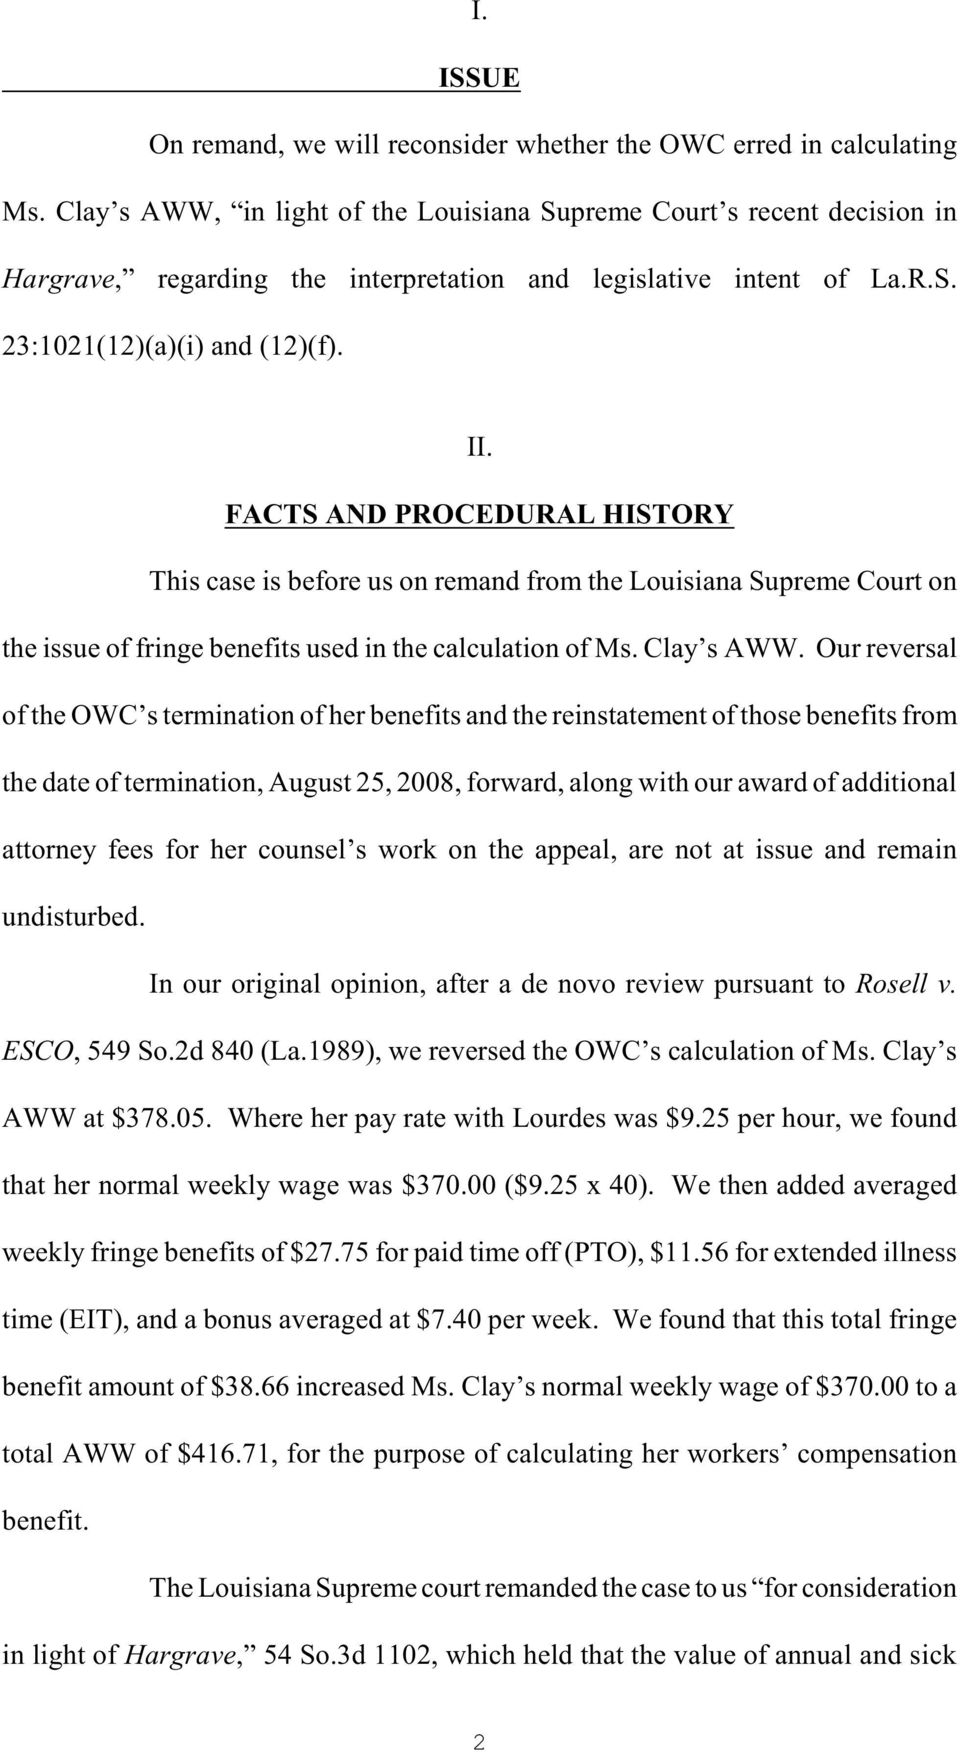 FACTS AND PROCEDURAL HISTORY This case is before us on remand from the Louisiana Supreme Court on the issue of fringe benefits used in the calculation of Ms. Clay s AWW.